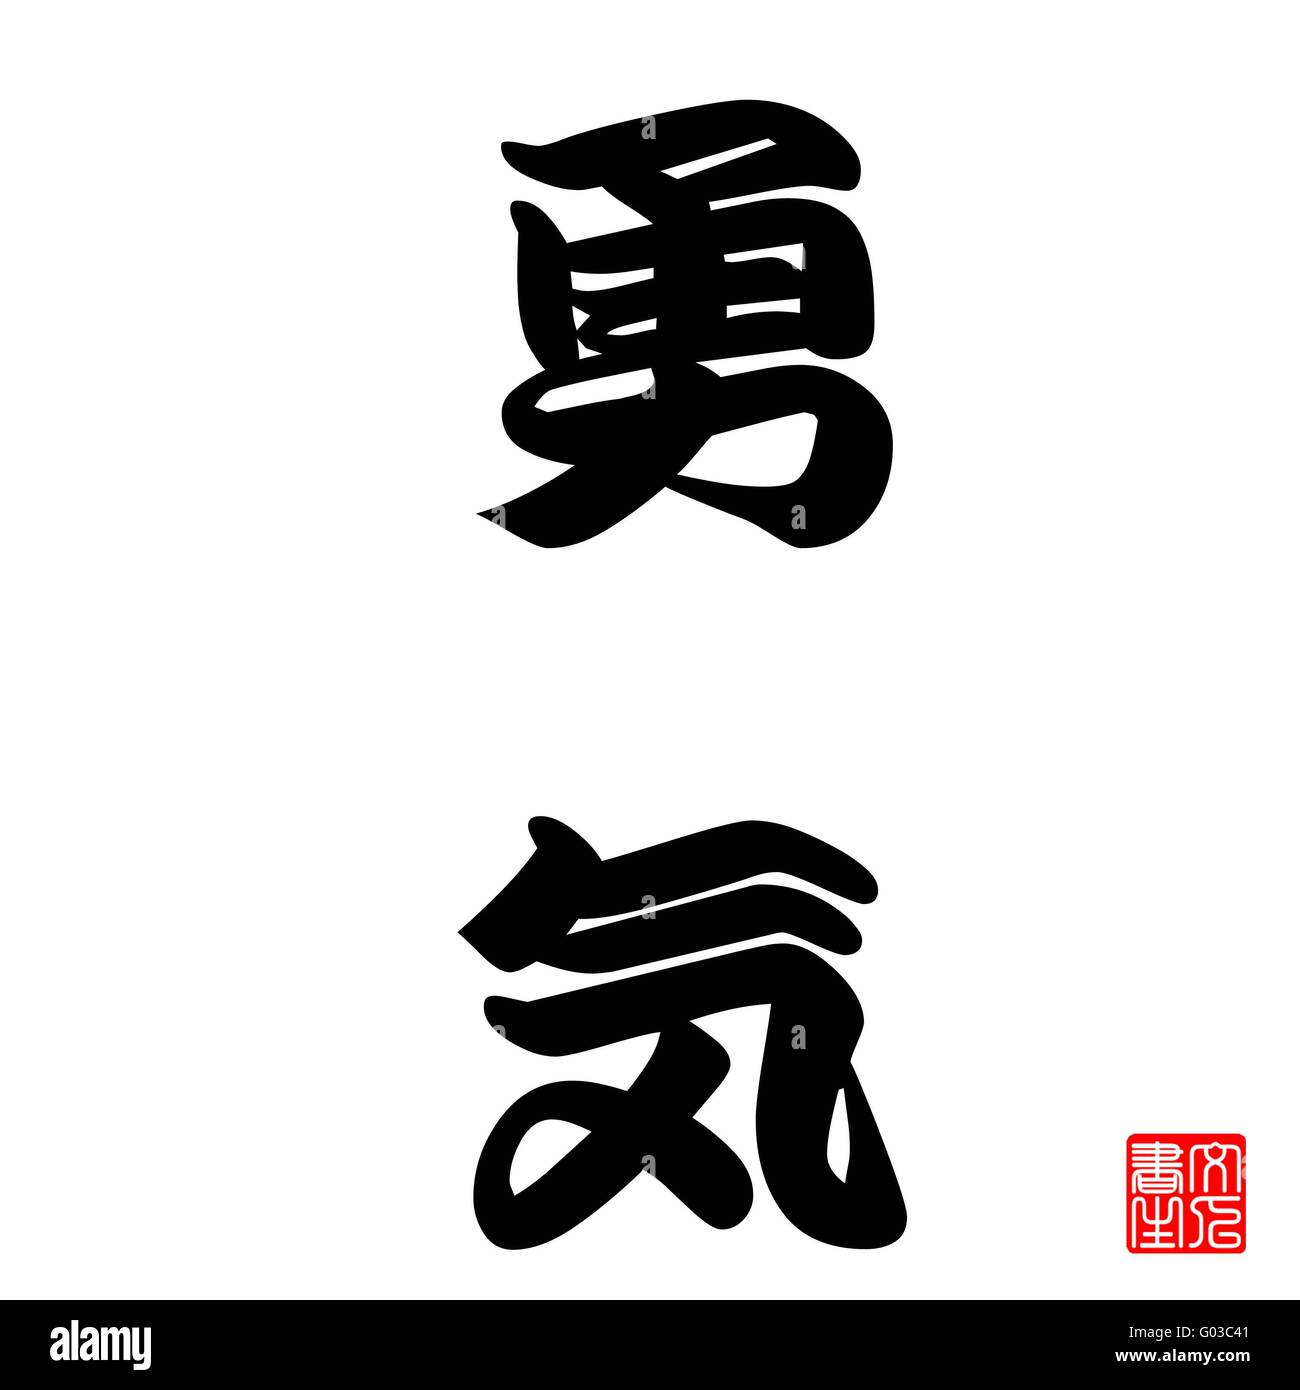 Courage Traditional Chinese Calligraphy Art Stock Photos Courage